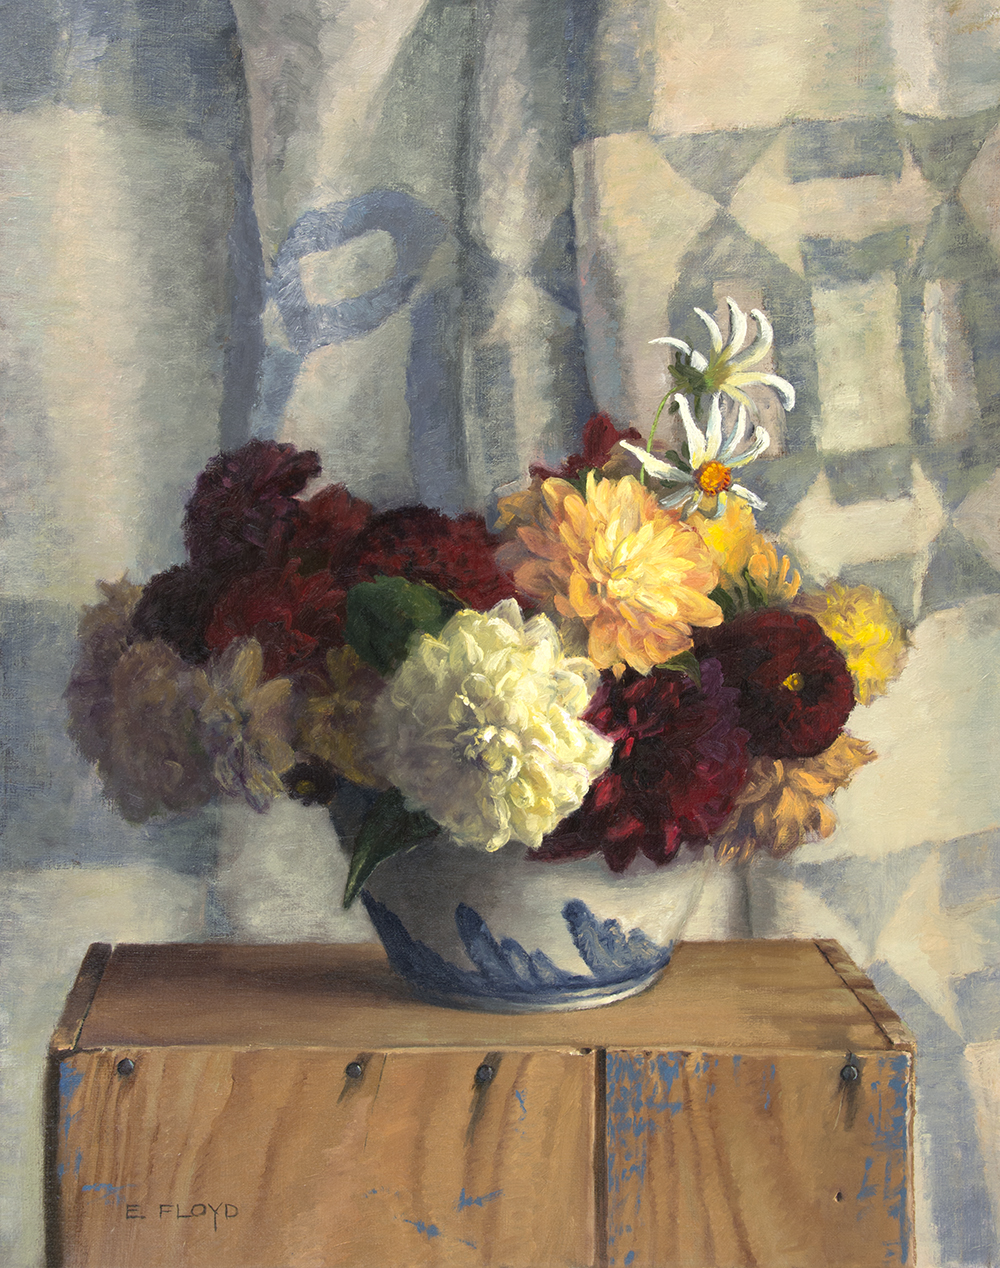 Dahlias in Salt Glaze Bowl, 20x16 inches, oil on linen, studio painting - framed, AVAILABLE, for more information info@principlegallery.com